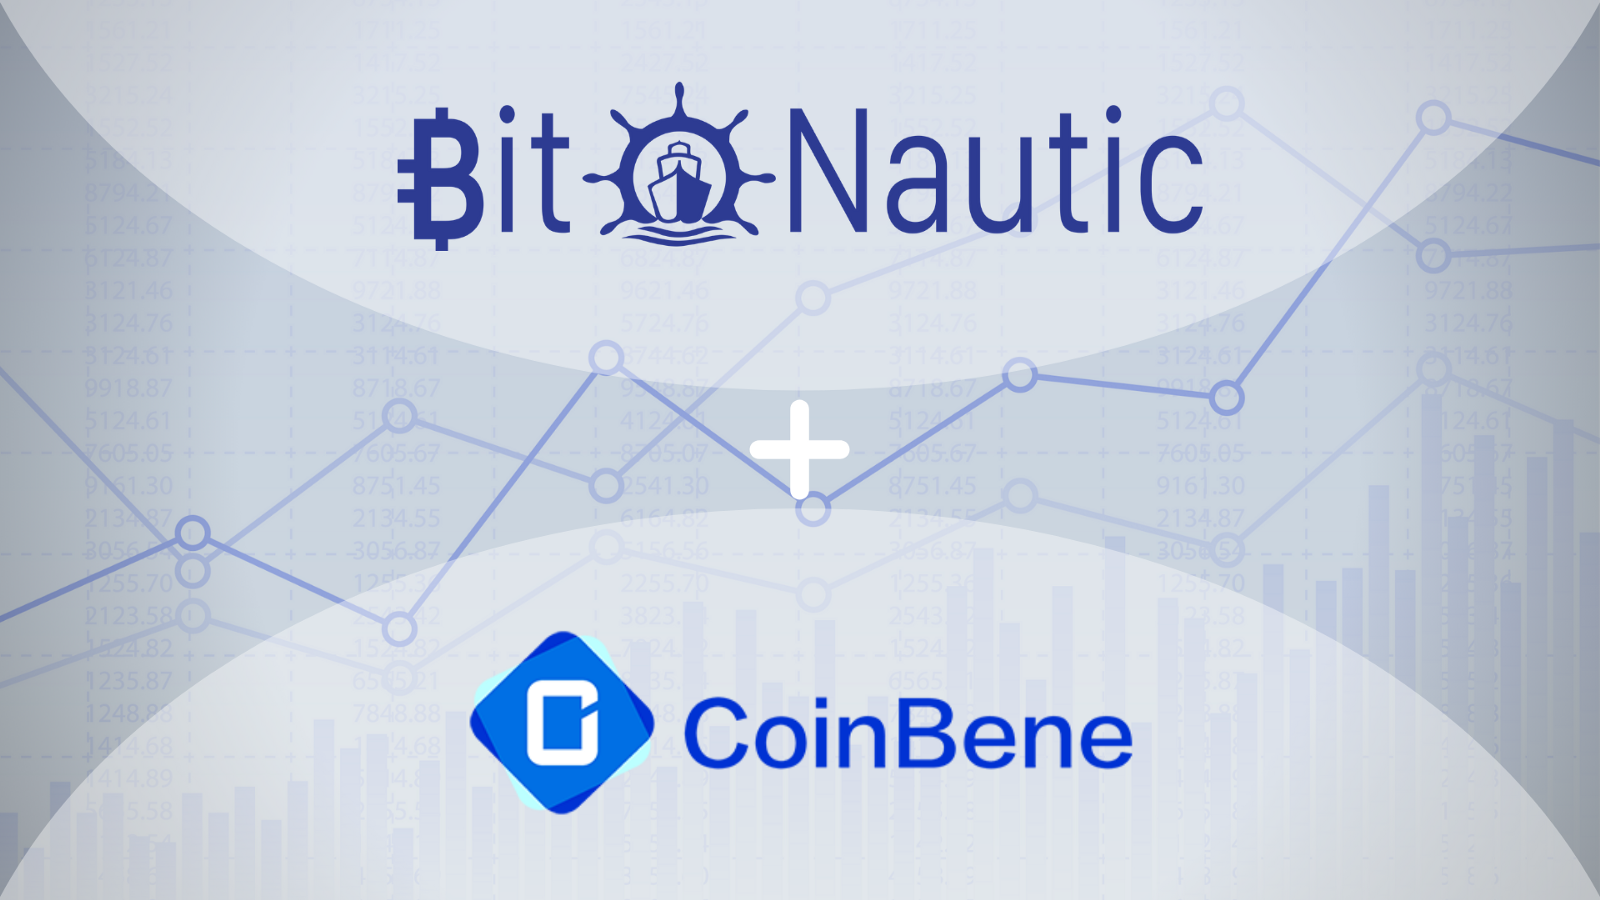 Bitnautic Has Closed An Agreement With Top 10 Exchange For The Listing Of Token